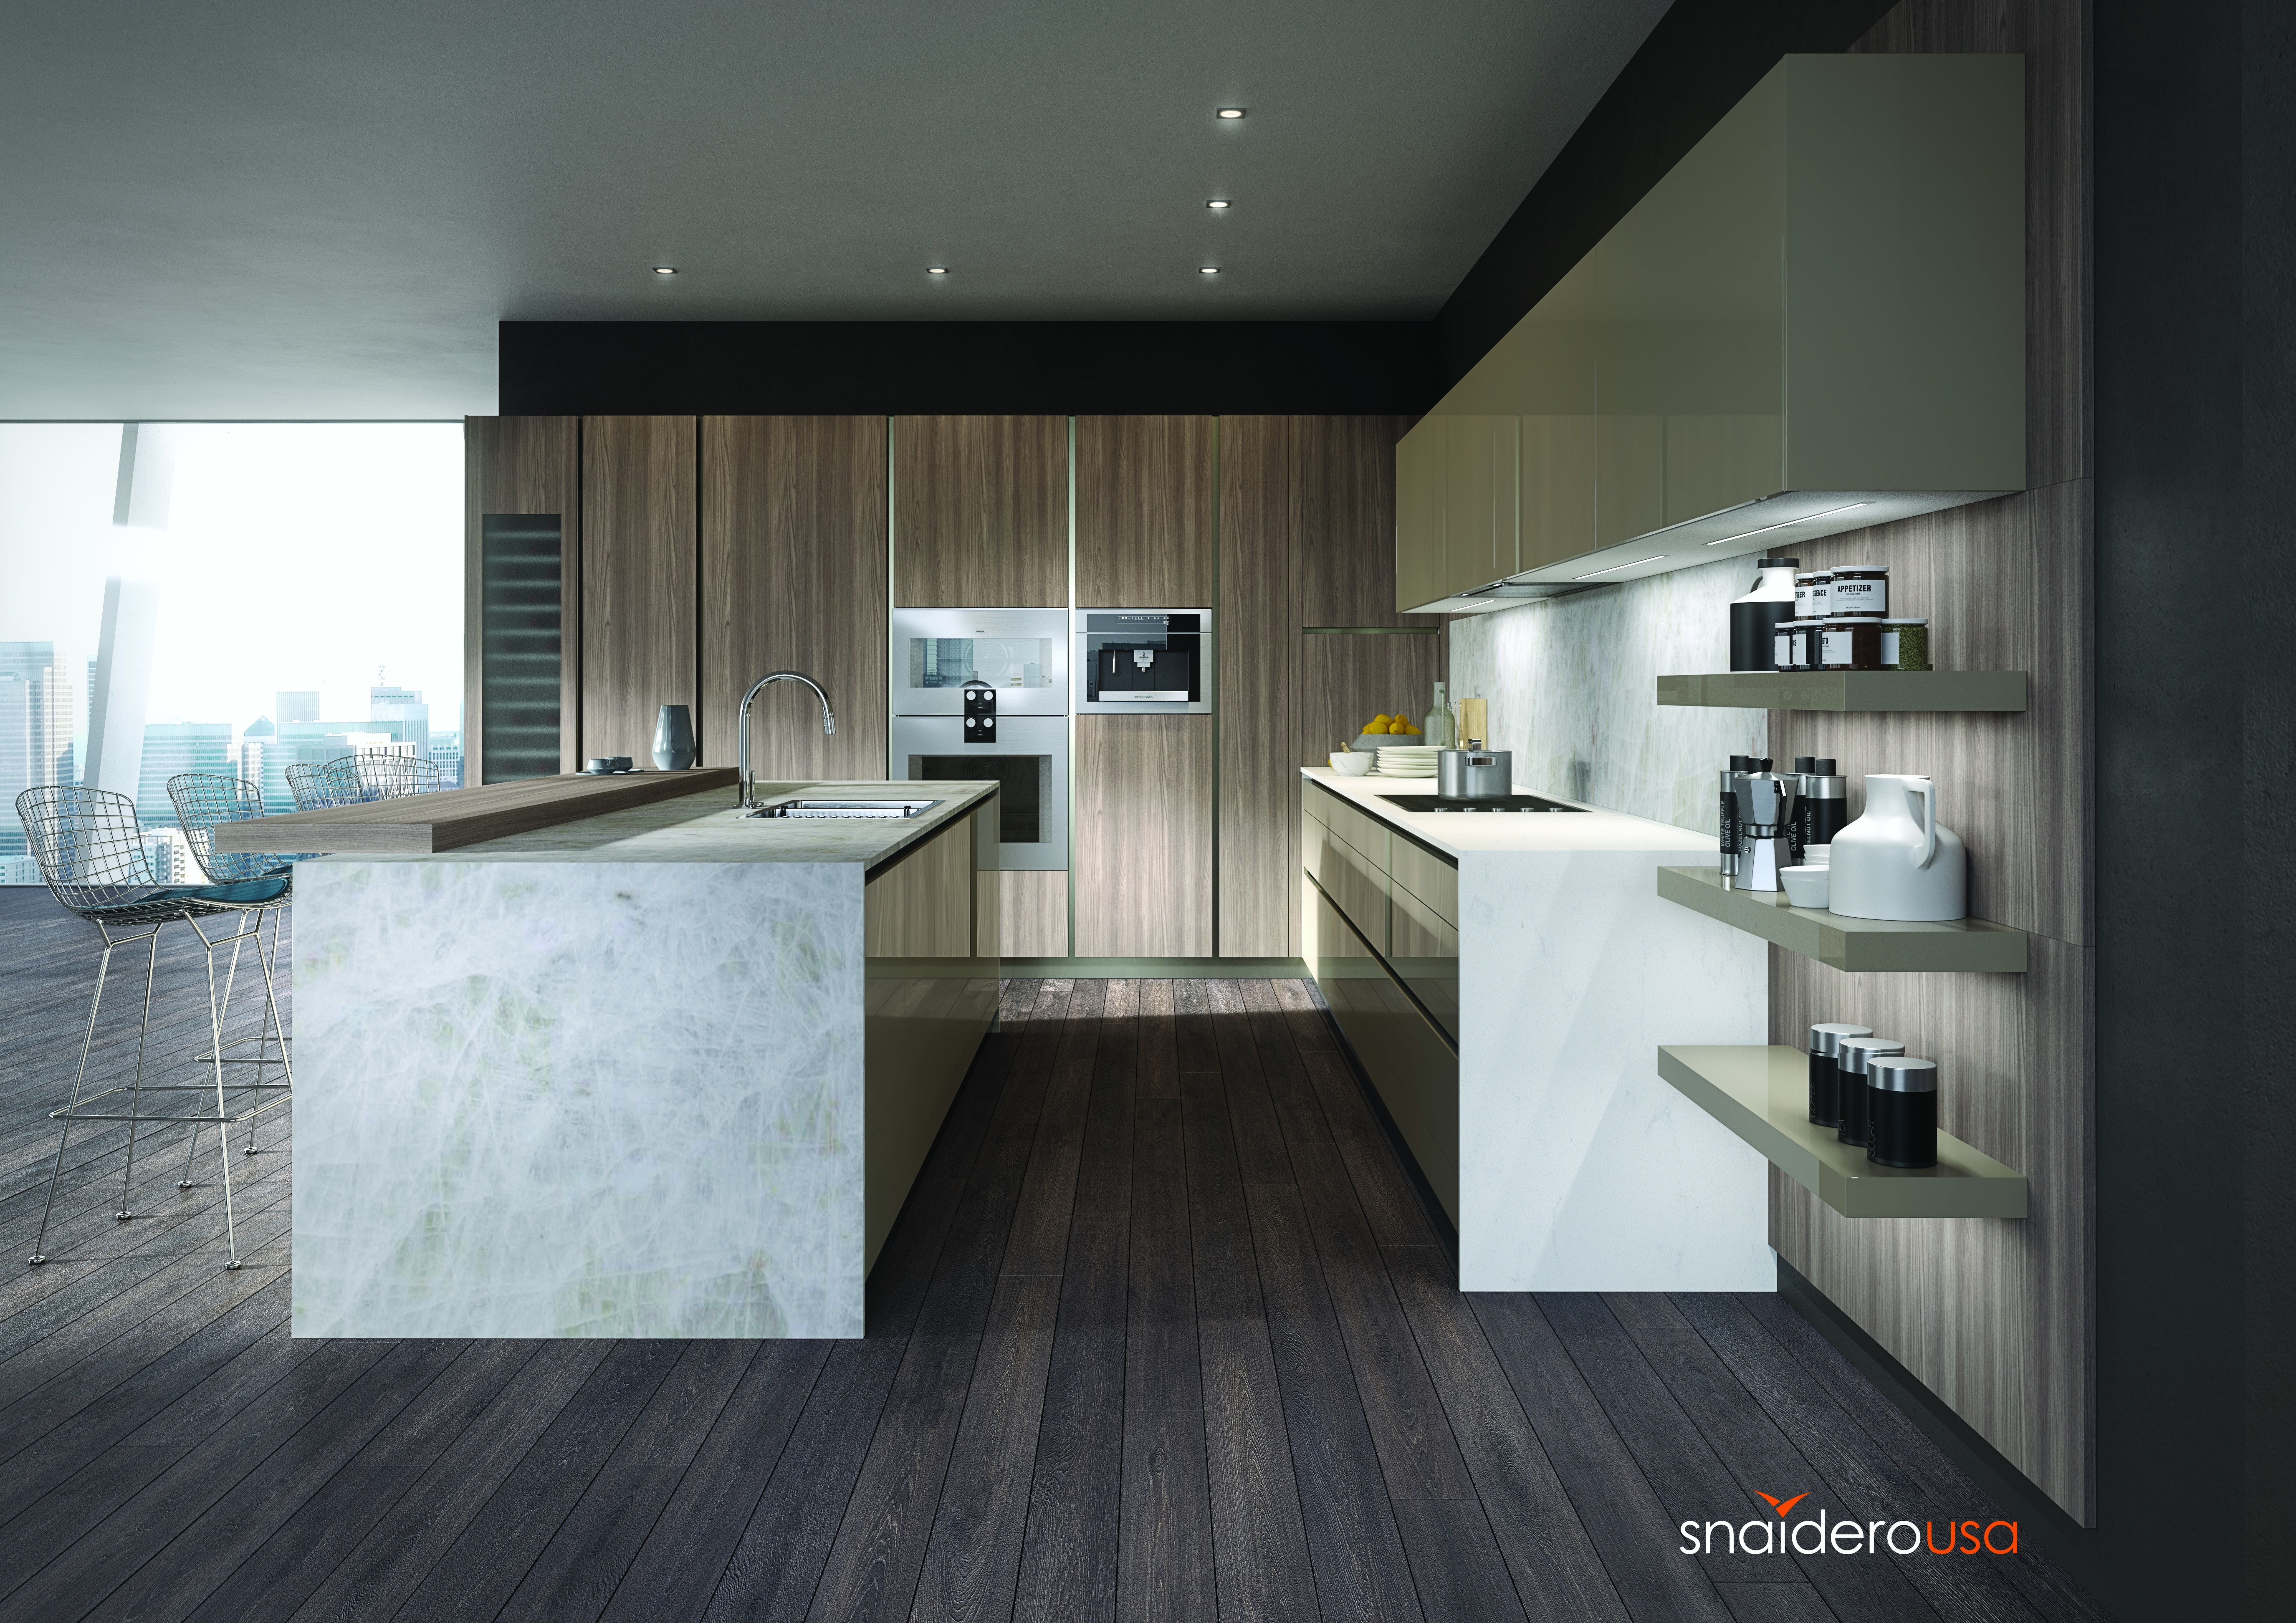 Kitchen Design Companies Chicago Italian High Rise Cabinetry Firm Develops Traditional Line